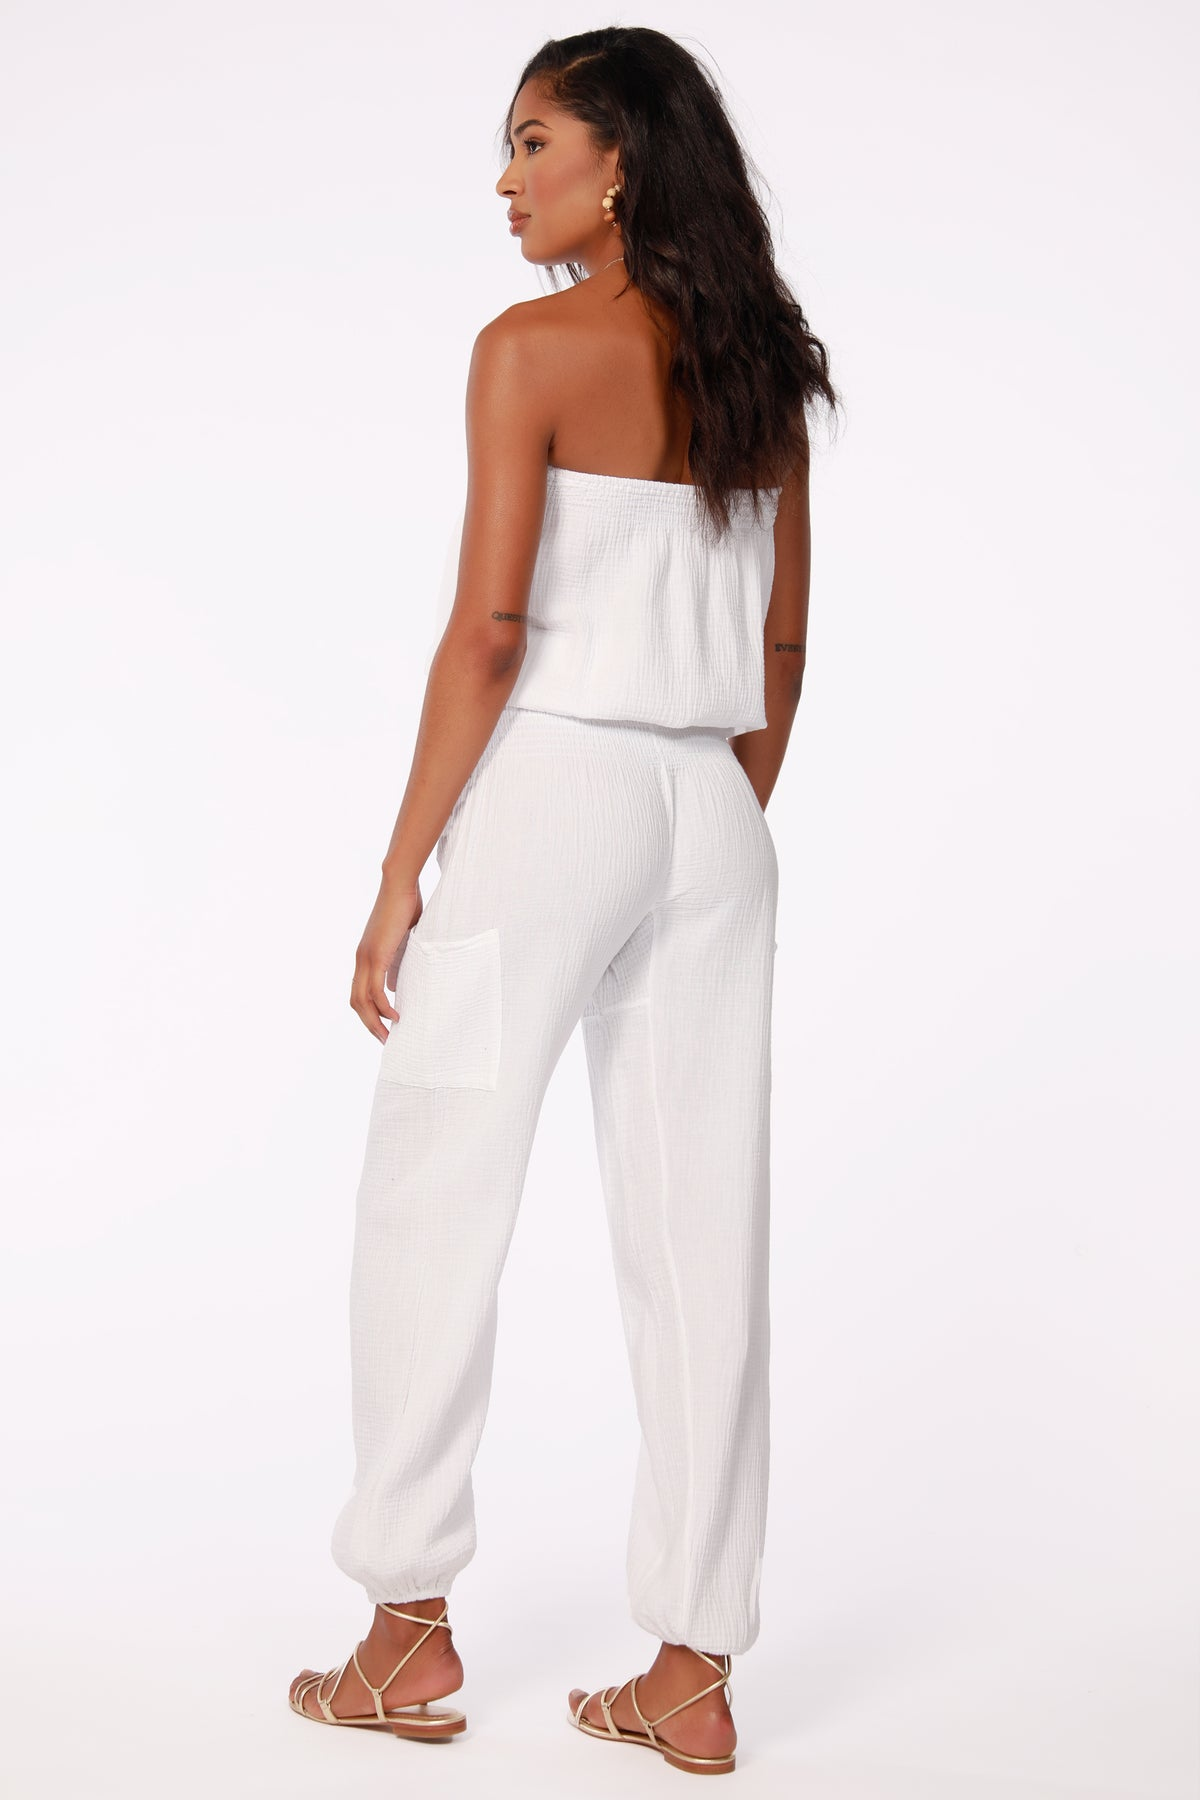 BEACH GAUZE POCKET PANT